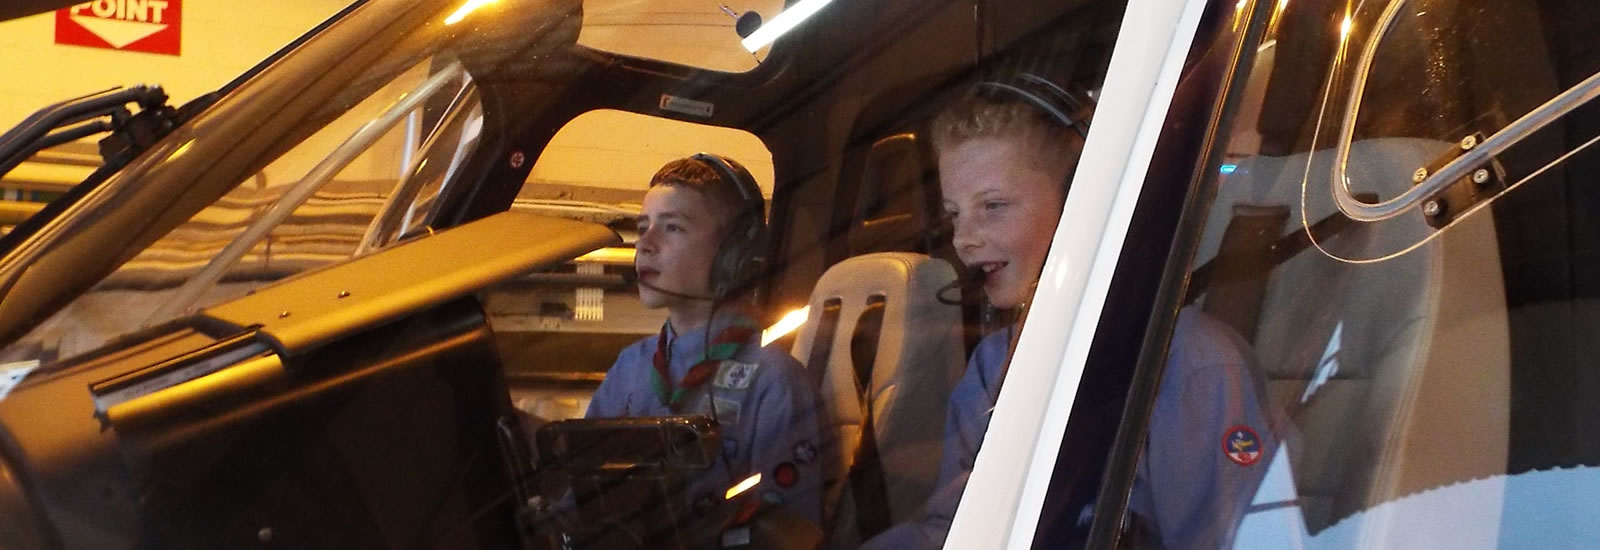 At the Controls of a Sloane Helicopter